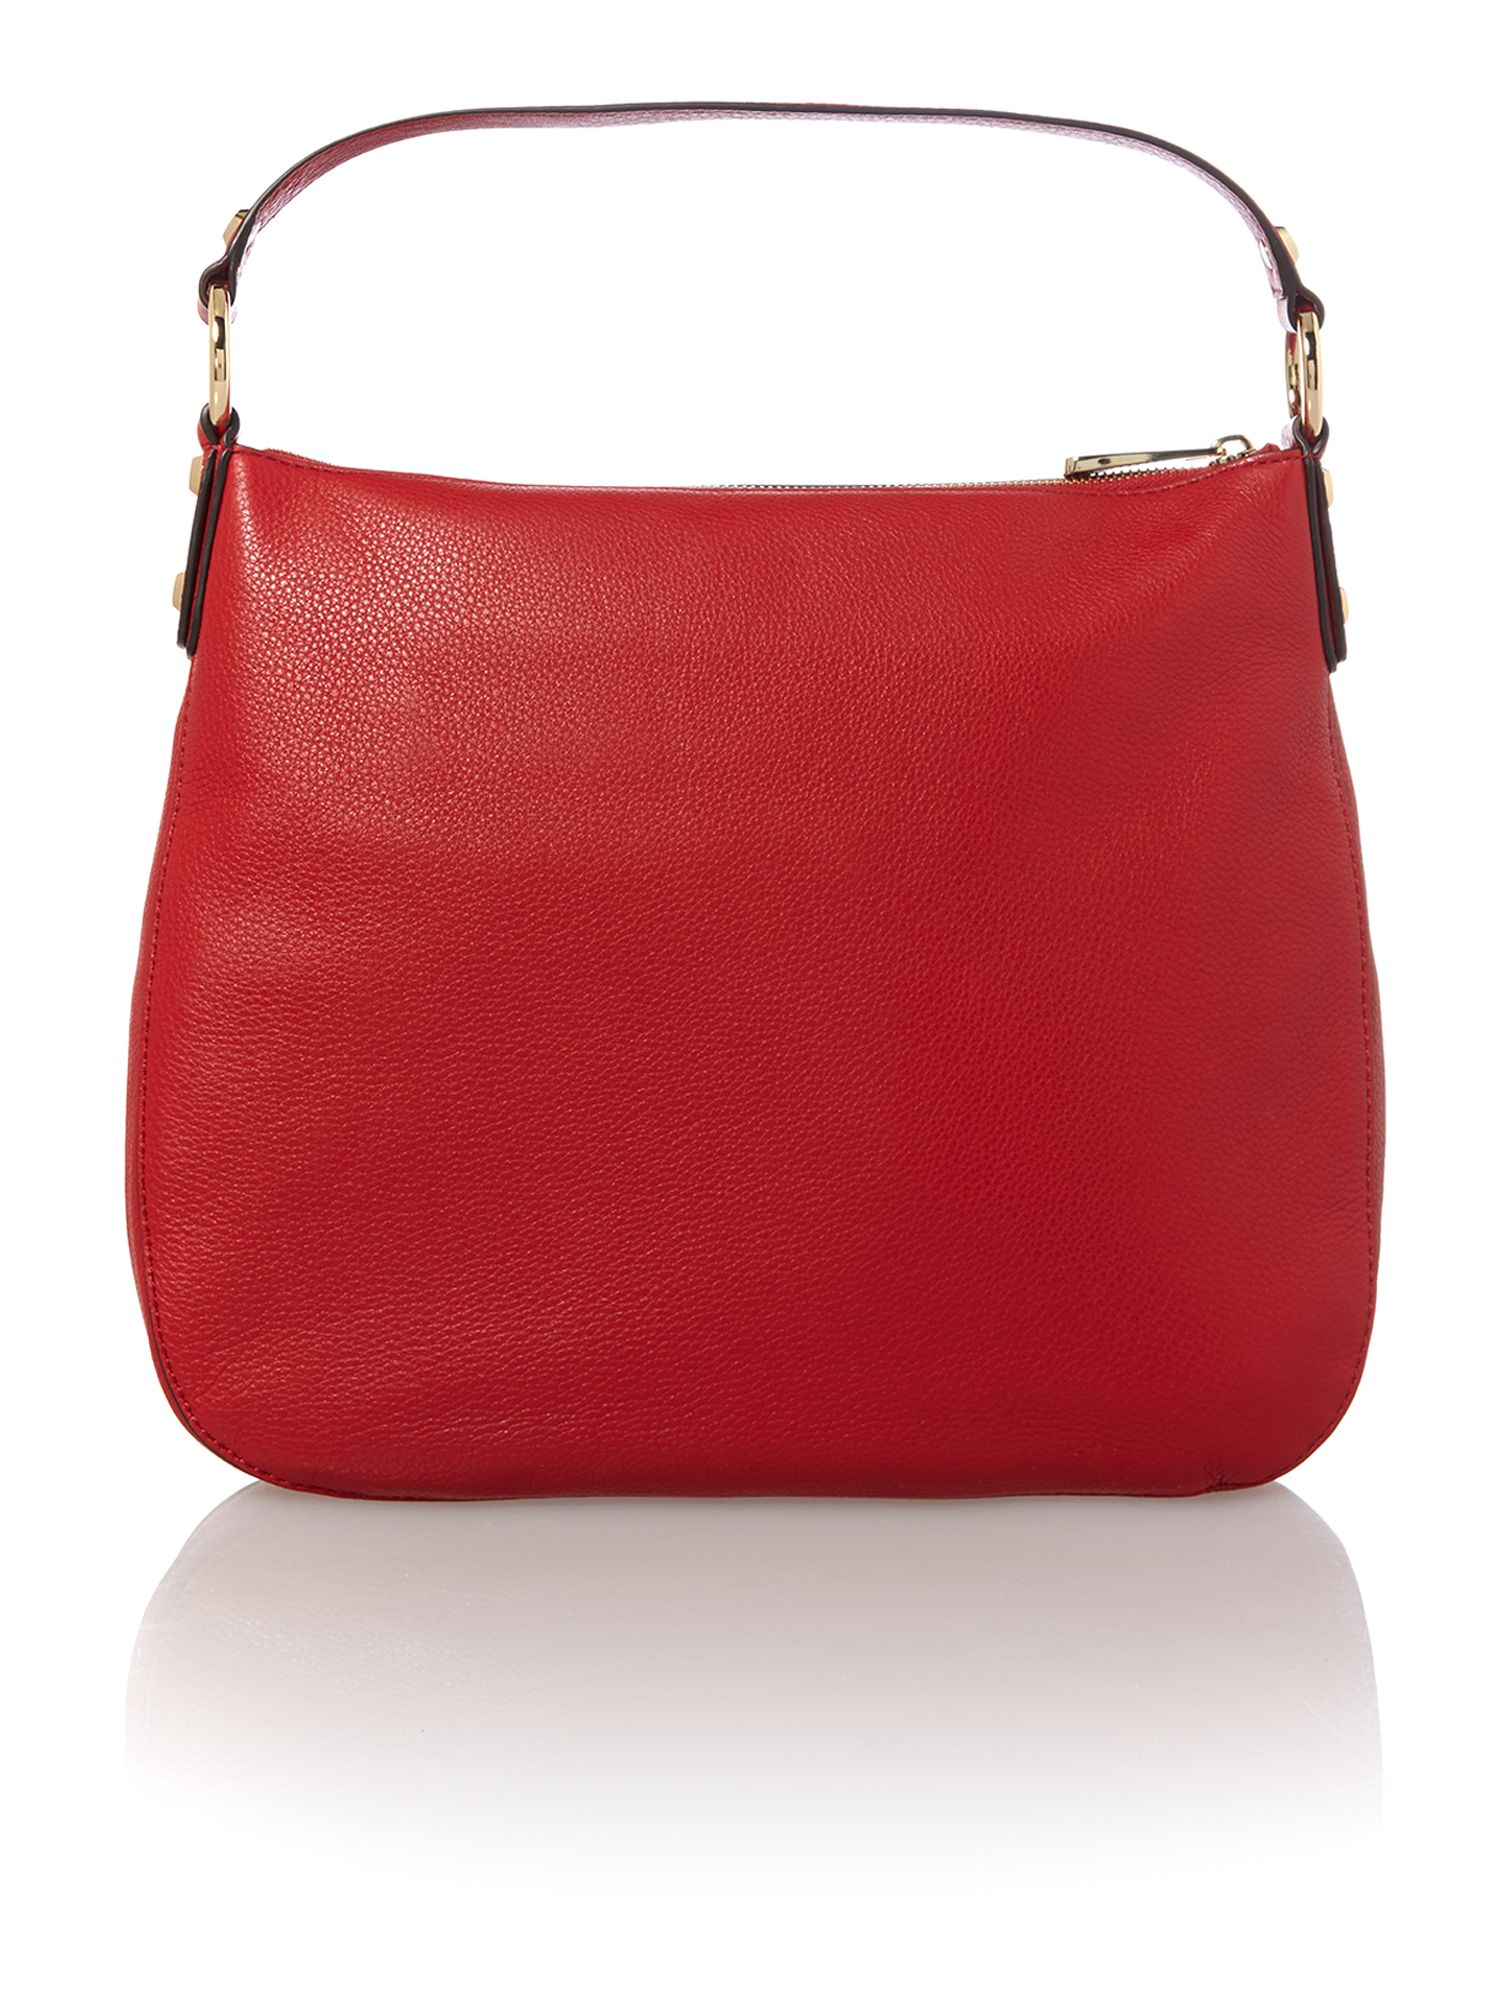 Fulton medium red hobo bag